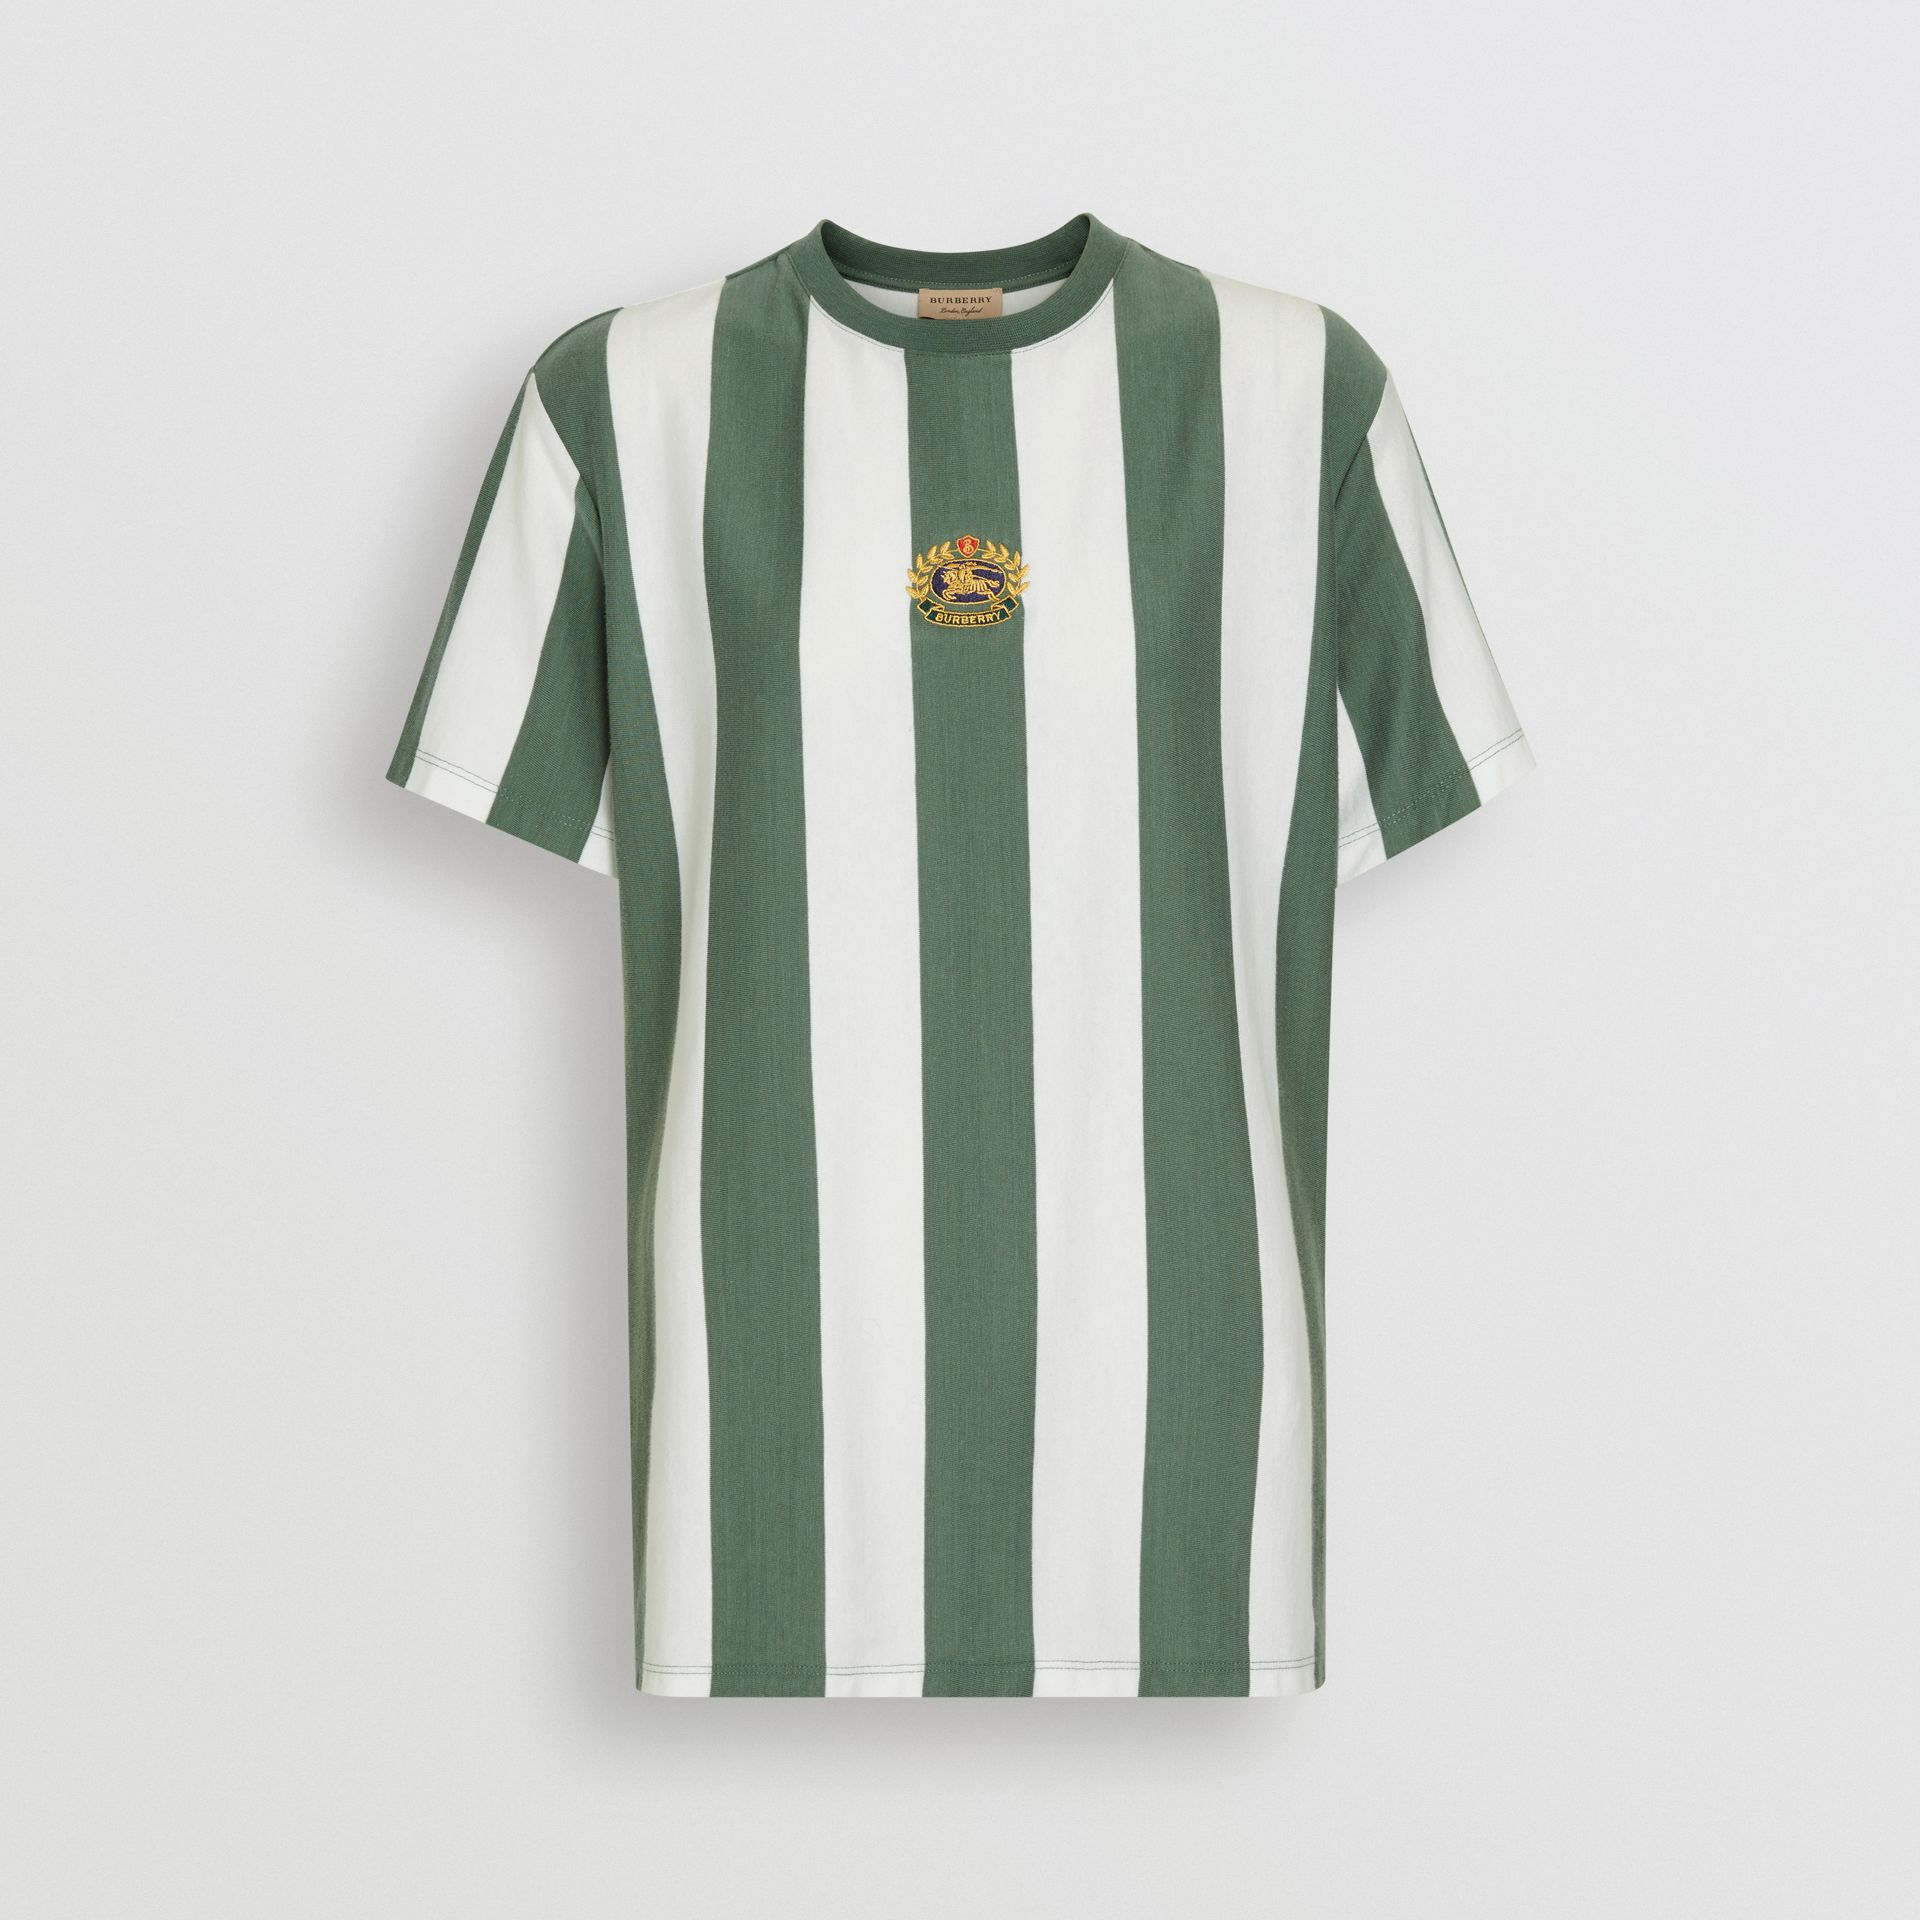 Embroidered Crest Striped Cotton T-shirt in Forest Green - Women | Burberry Canada - gallery image 3